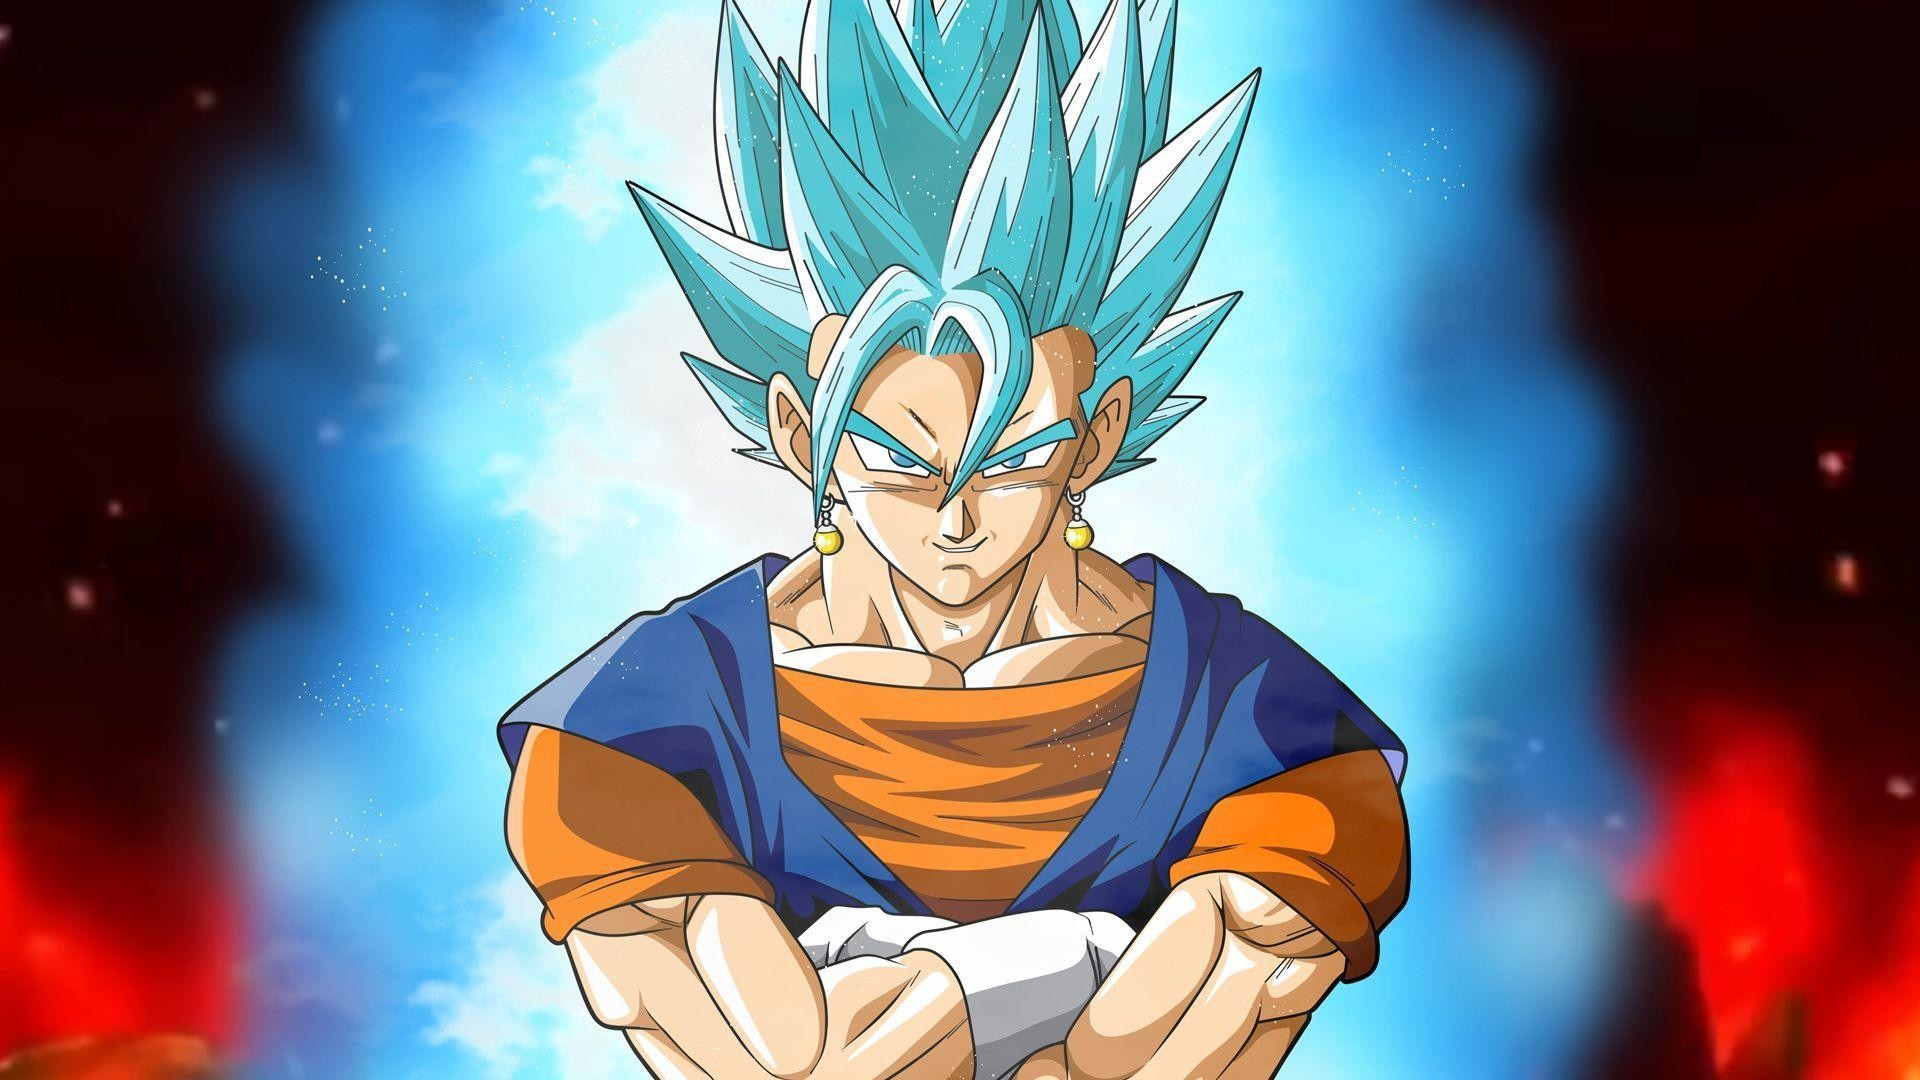 Super saiyan 4 goku and vegeta wallpapers 60 images - Goku 5 super saiyan ...